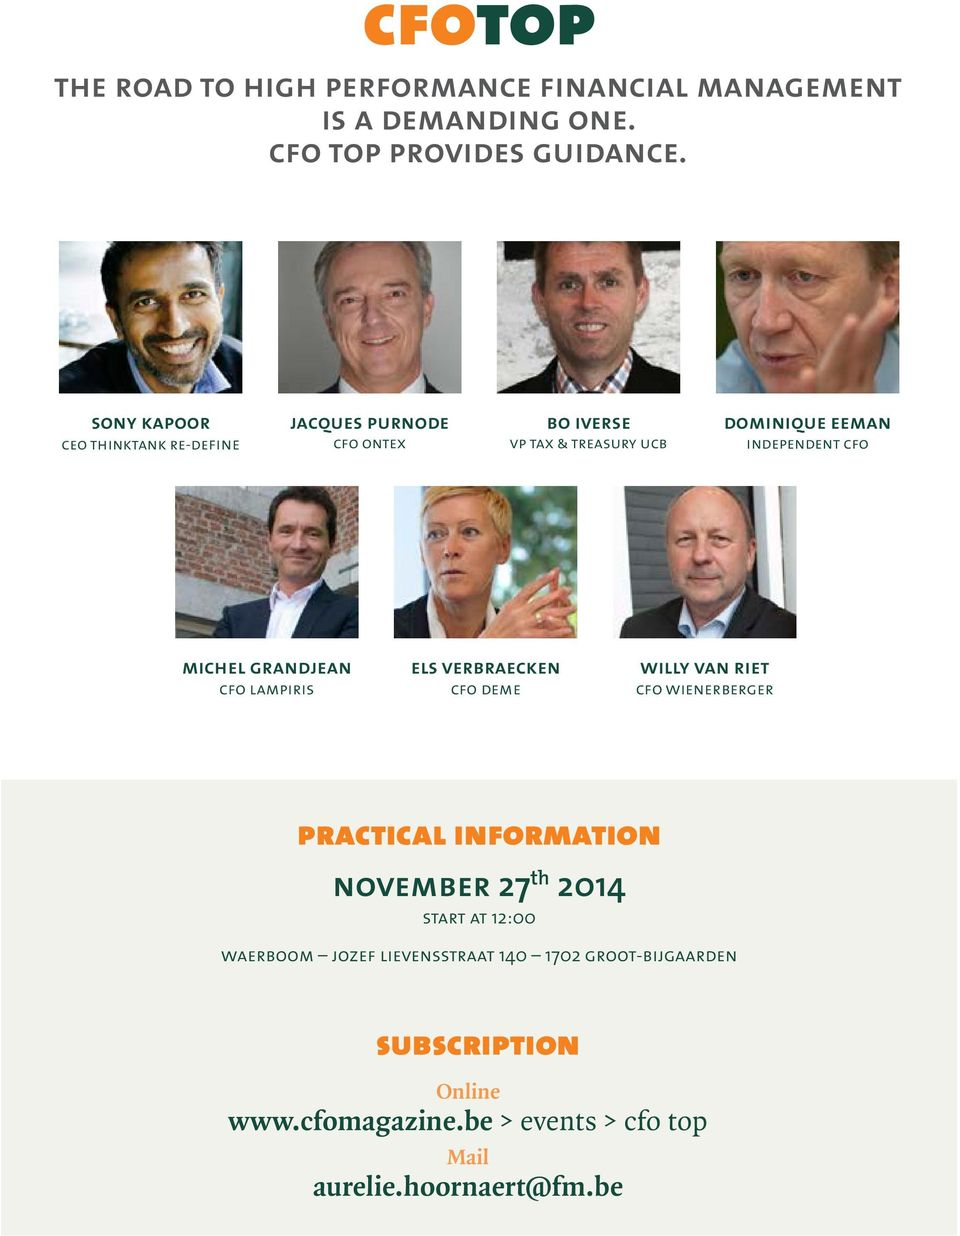 michel grandjean cfo lampiris els verbraecken cfo deme willy van riet cfo wienerberger practical information november 27 th 2014